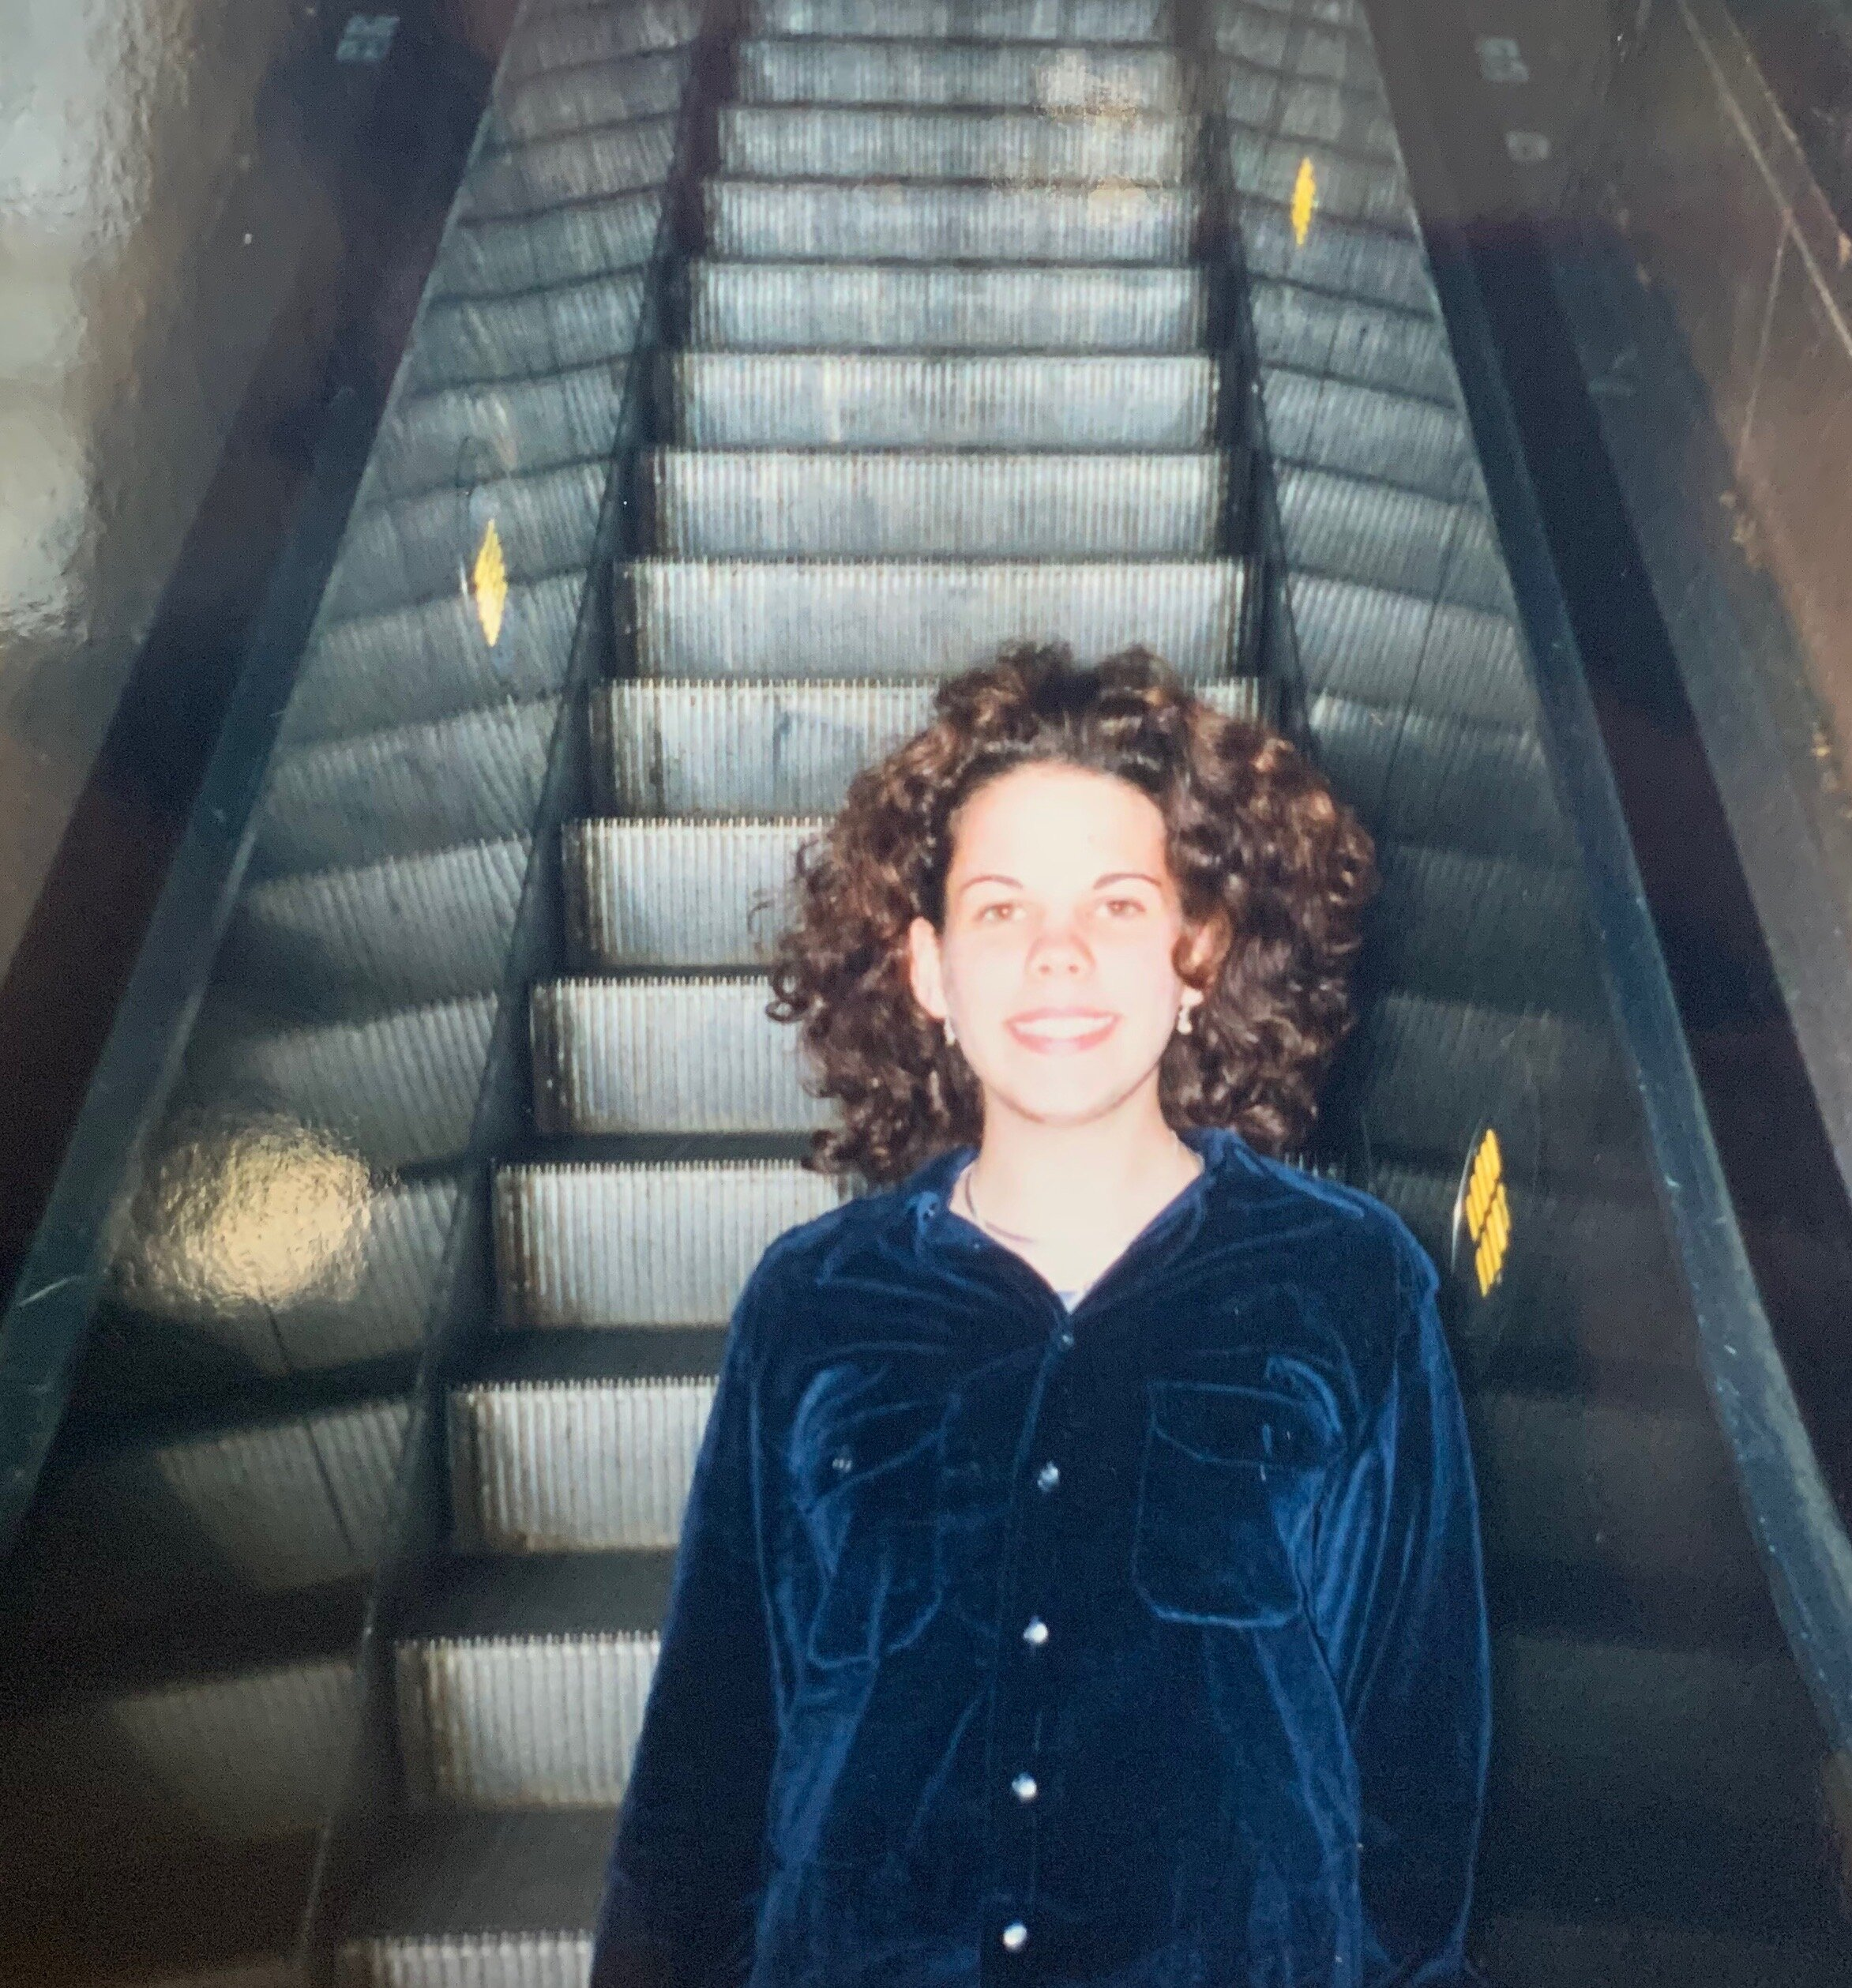 Me, aged 17, in Barcelona… when velvet was apparently in-style. Who am I kidding, I never had style.